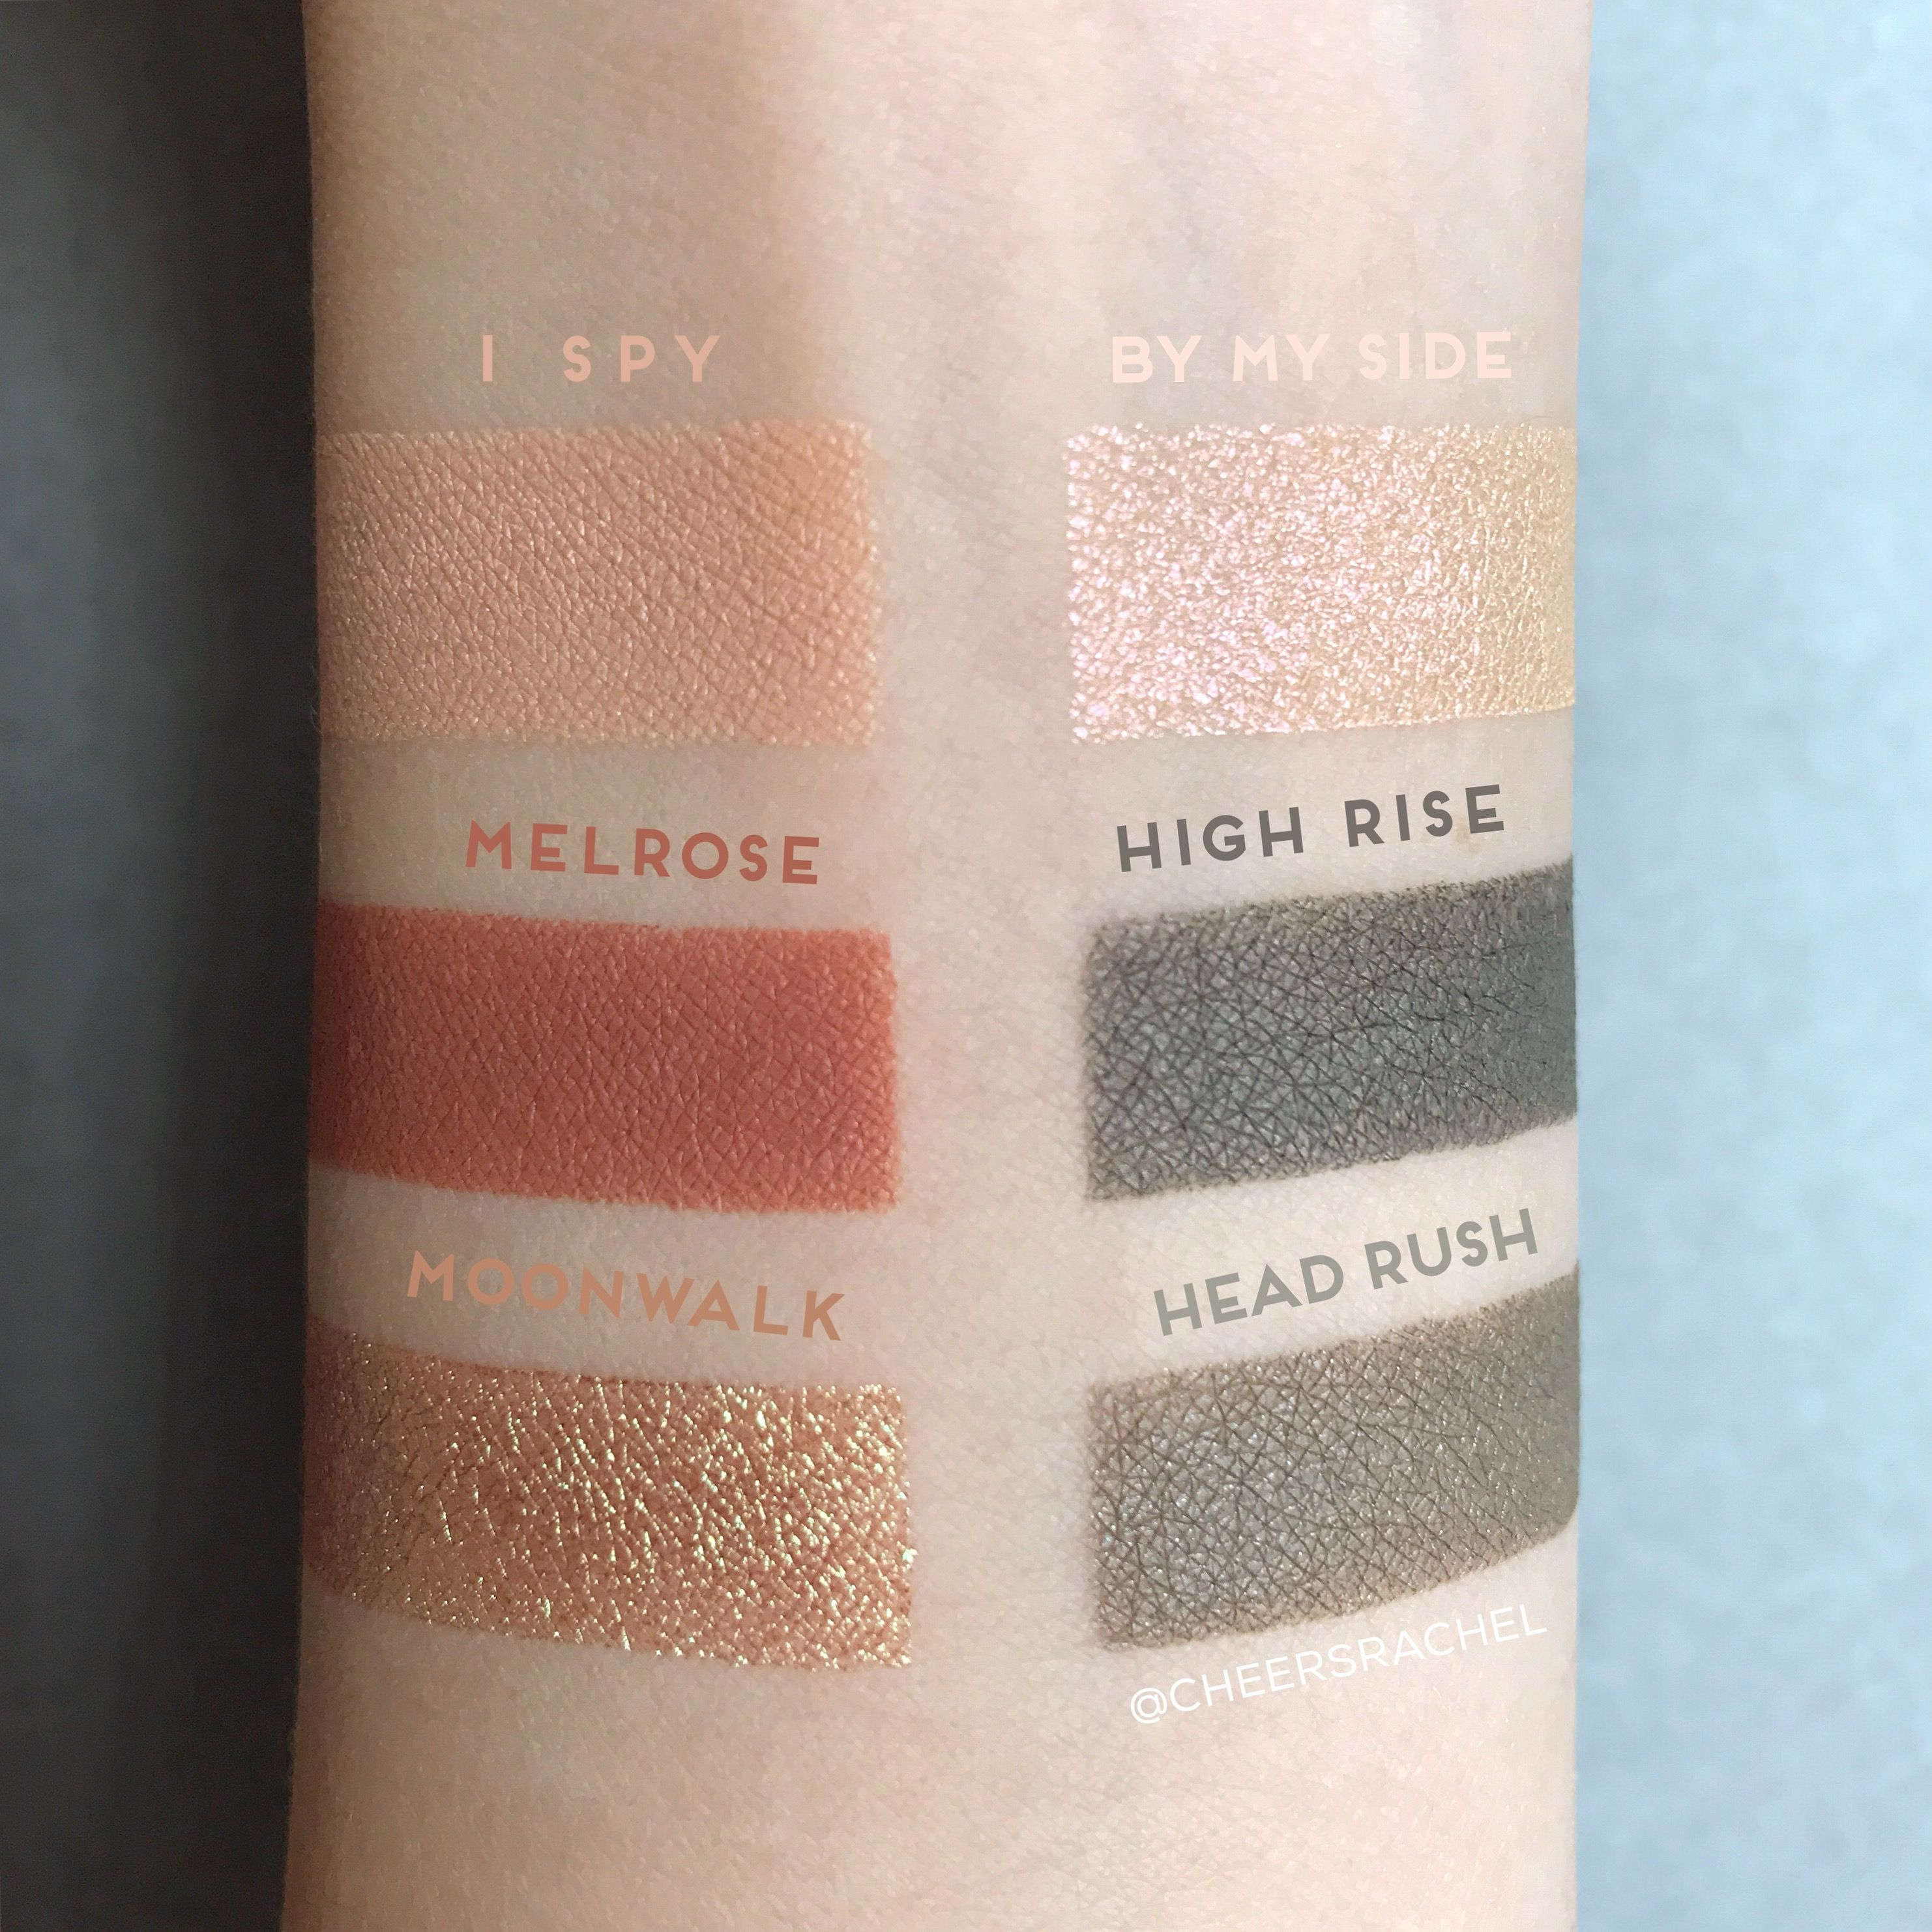 Swatches of the ColourPop Love A Flare Super Shock Shadow Collection! From the ColourPop Fall Edit. Set contains 6 Super Shock Shadows in: I Spy, By My Side, Melrose, High Rise, Moonwalk, and Head Rush. (Also sold individually)